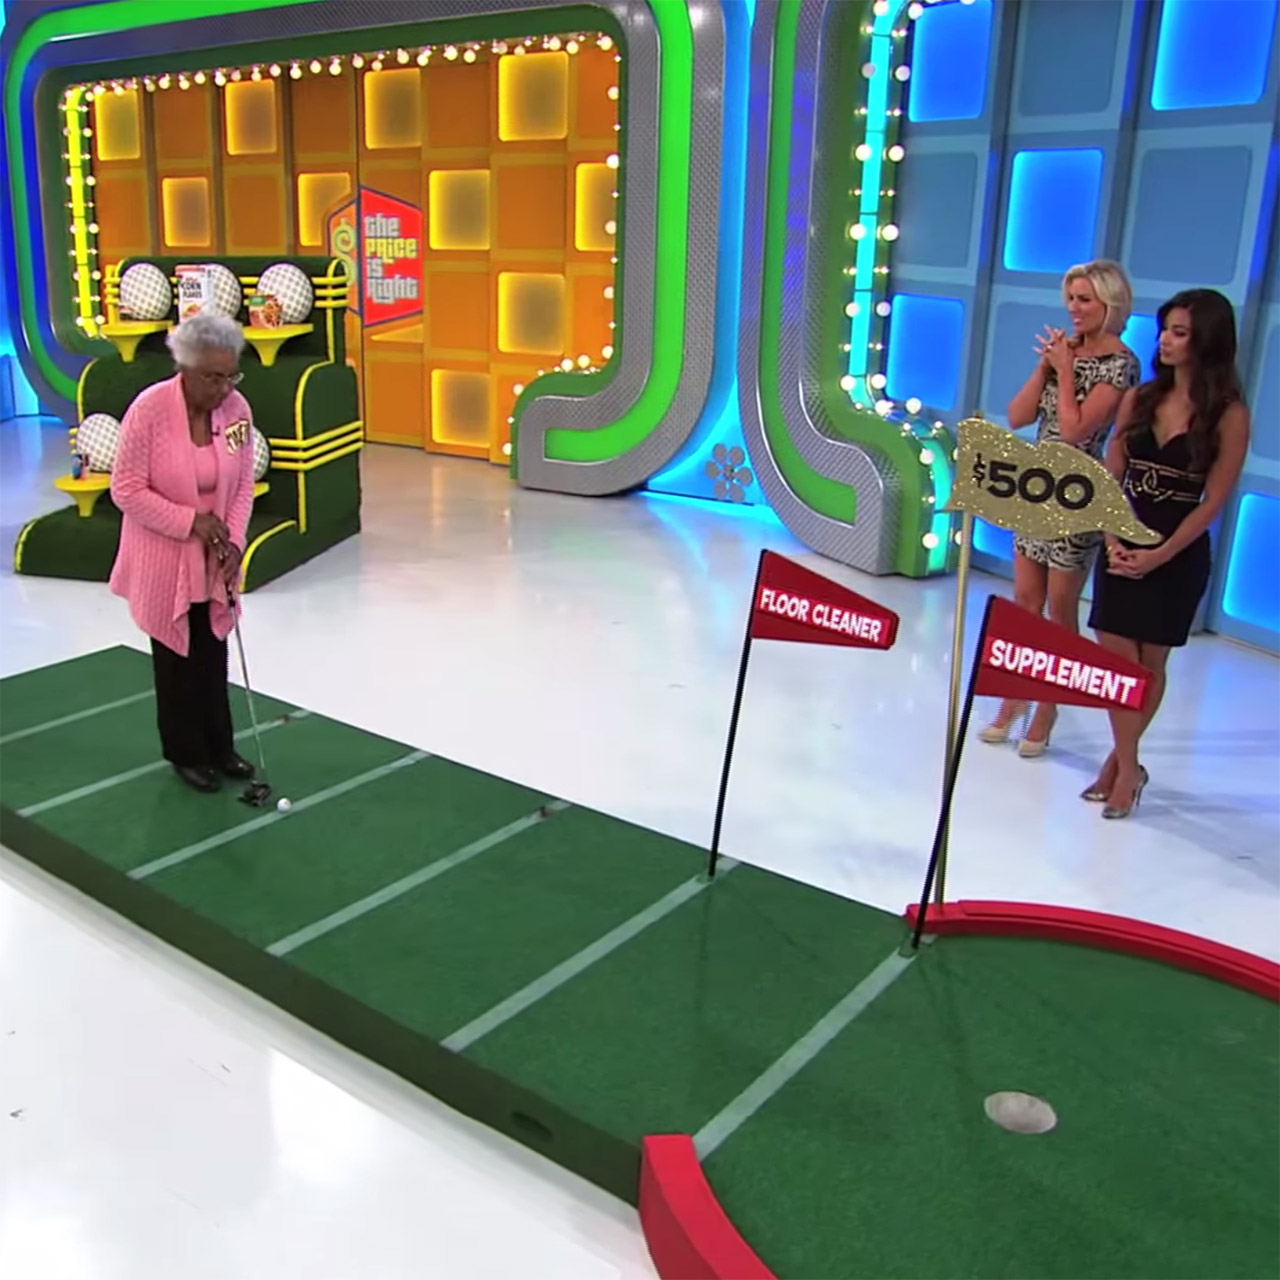 84-year-old Margaret makes hole in one (or two) on 'The Price Is Right'